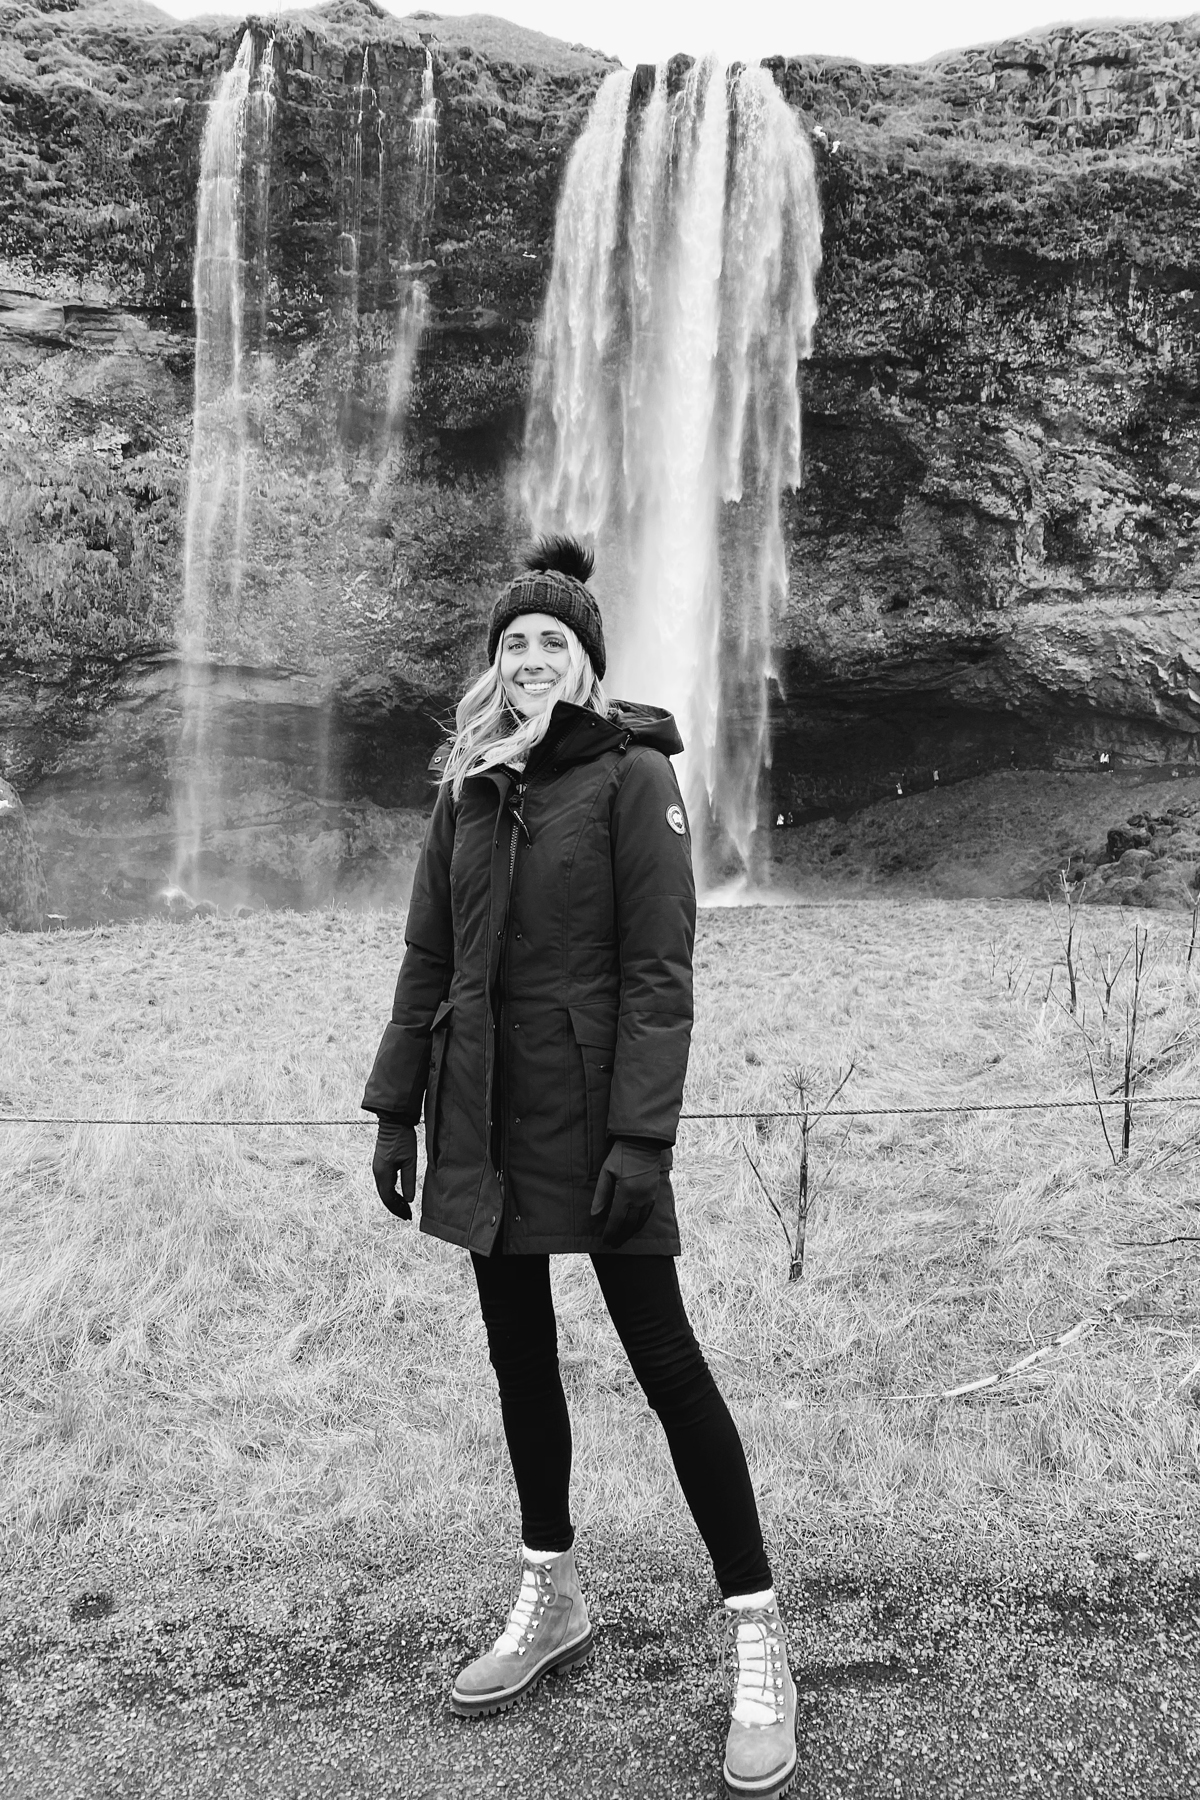 Fashion Jackson Wearing Canada Goose Black Jacket Winter Boots Black Beanie Waterfall Iceland Itinerary Travel Guide